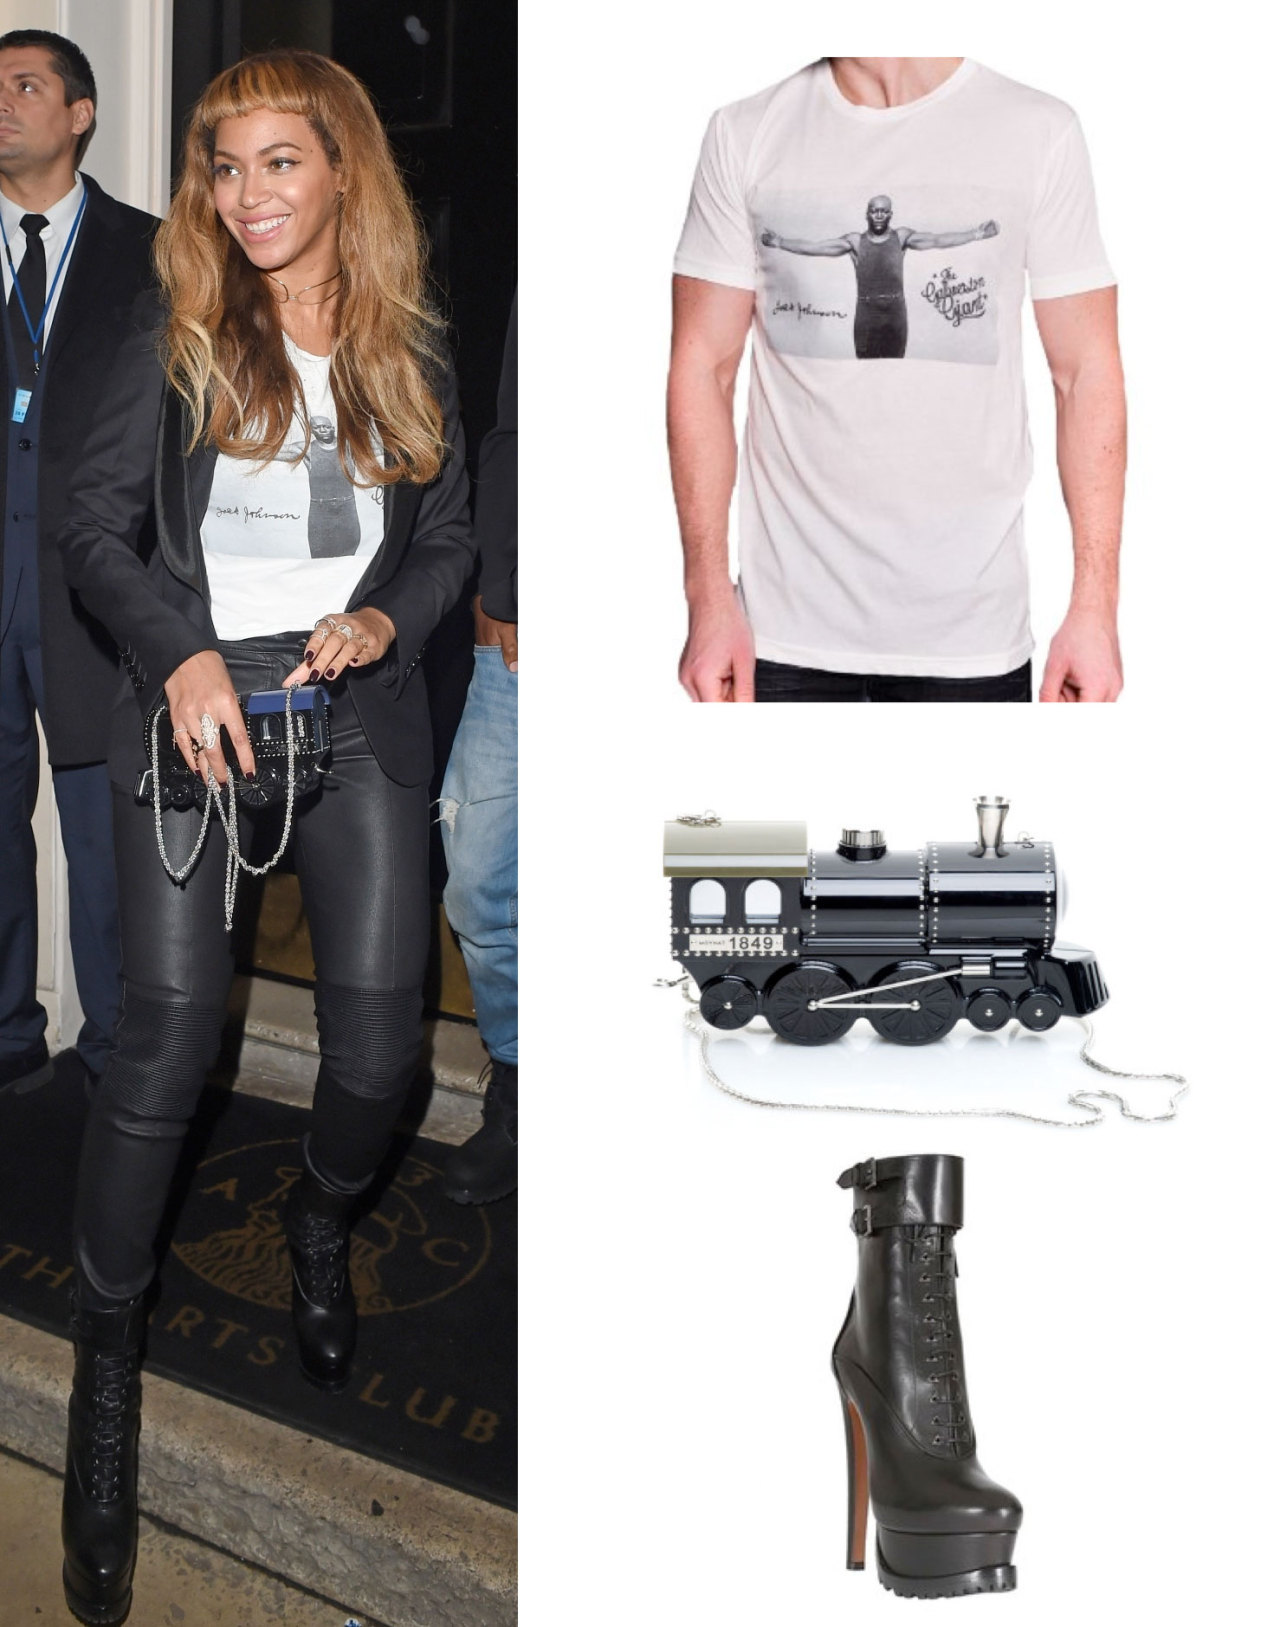 Beyoncé was wearing Roots of Fight Jack Johnson t-shirt, Moynat Paris x Pharrell Williams train clutch and Azzedine Alaïa leather lace-up boots